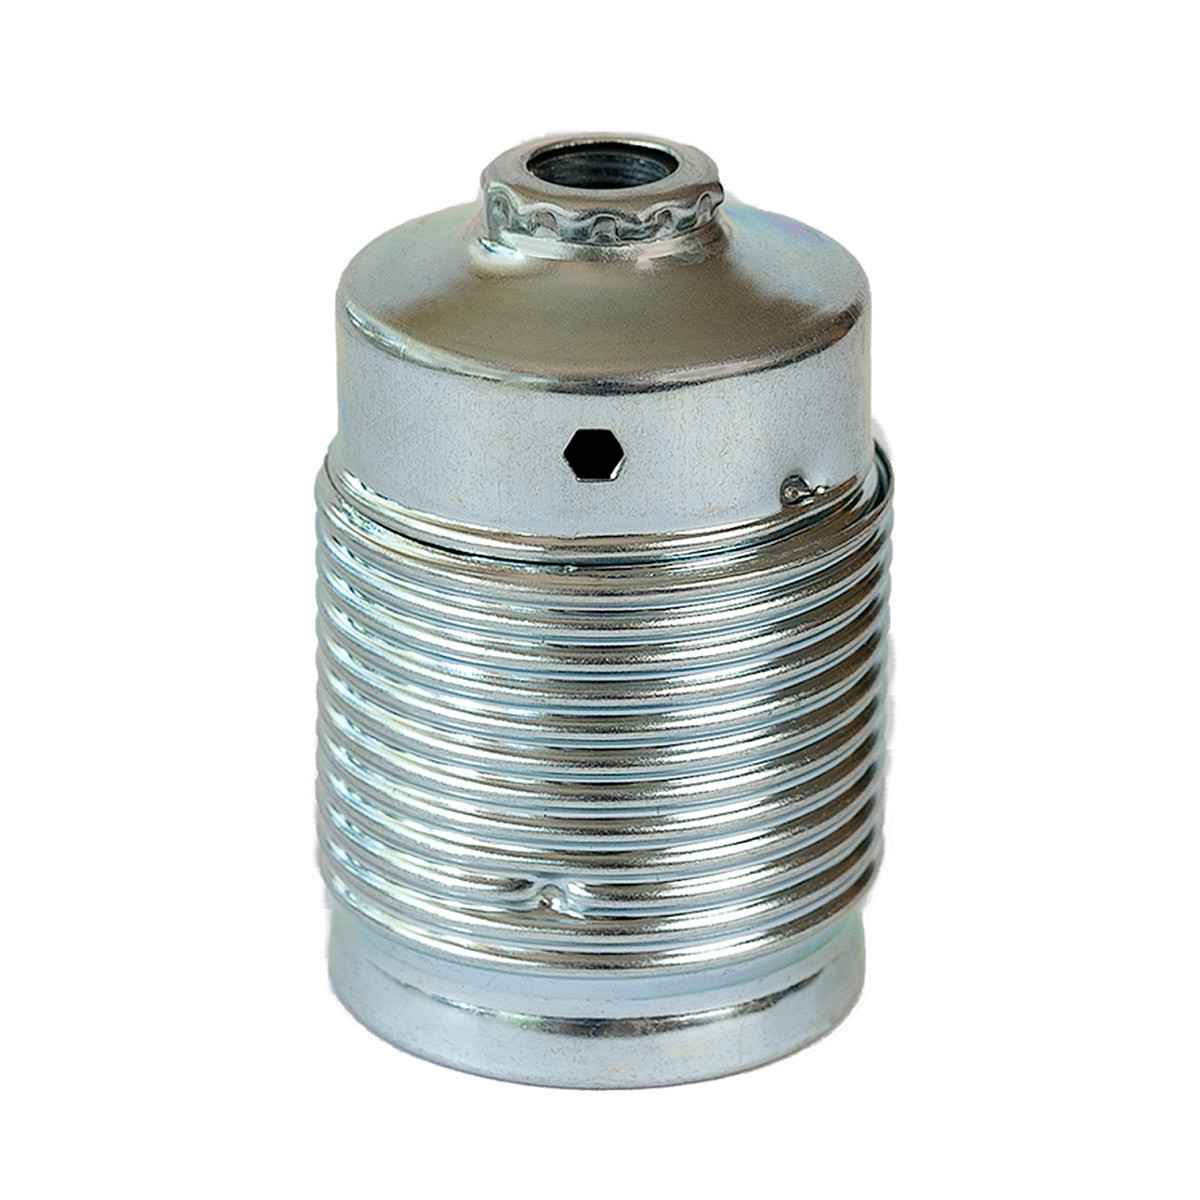 Metal Lamp Holder E27 Cylinder Shape with External Thread Silver